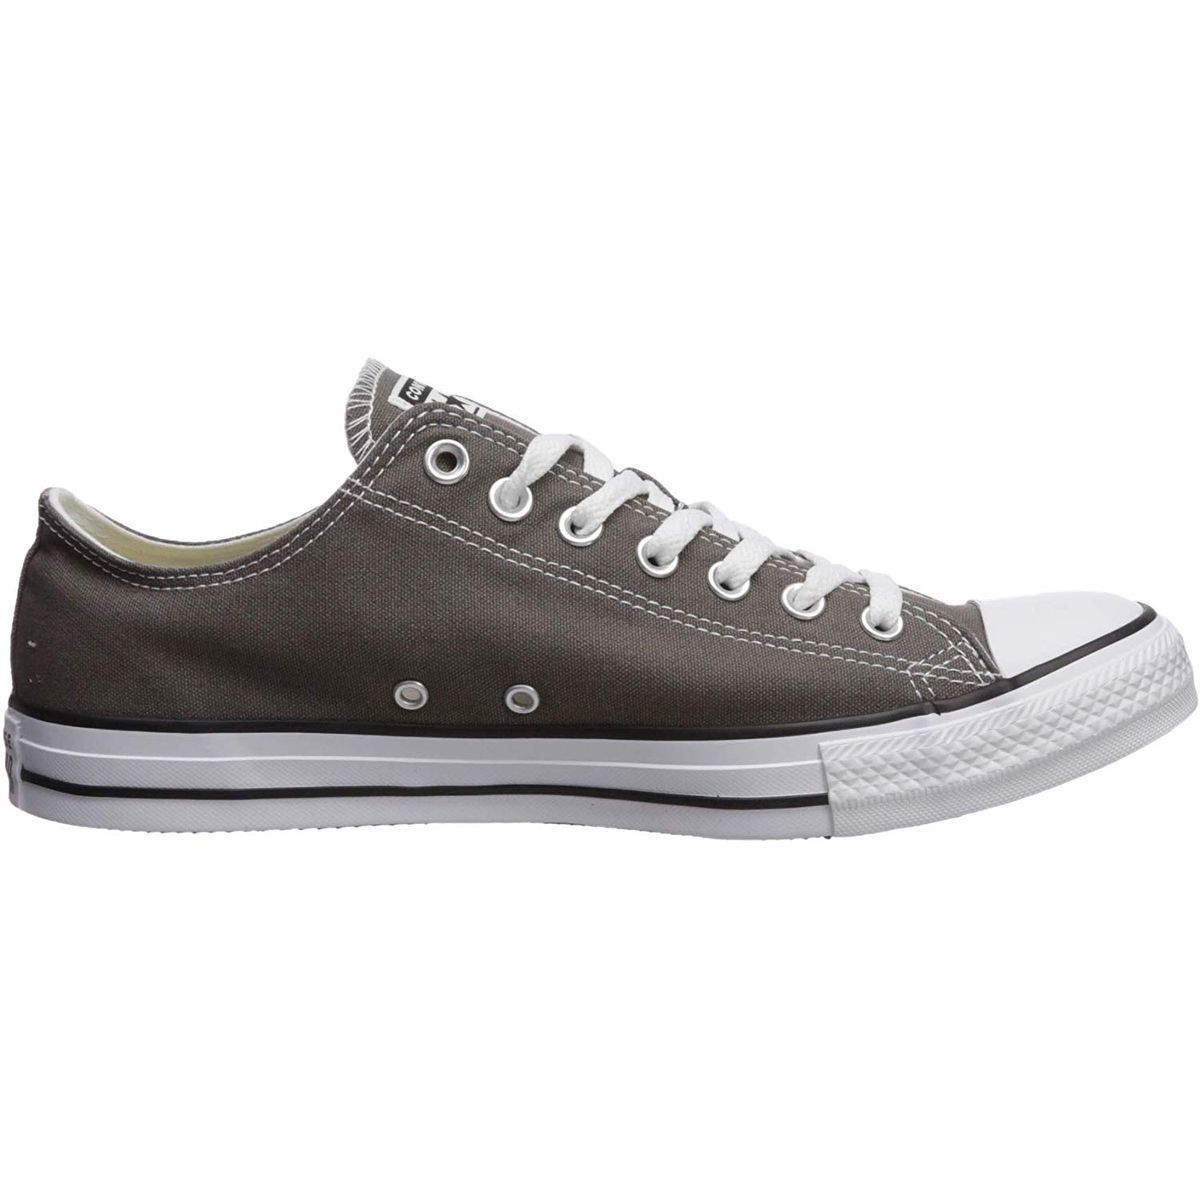 JESTER ALL STAR OX:GRIS/TOILE/TOILE/CAOUTCHOUC/Gris